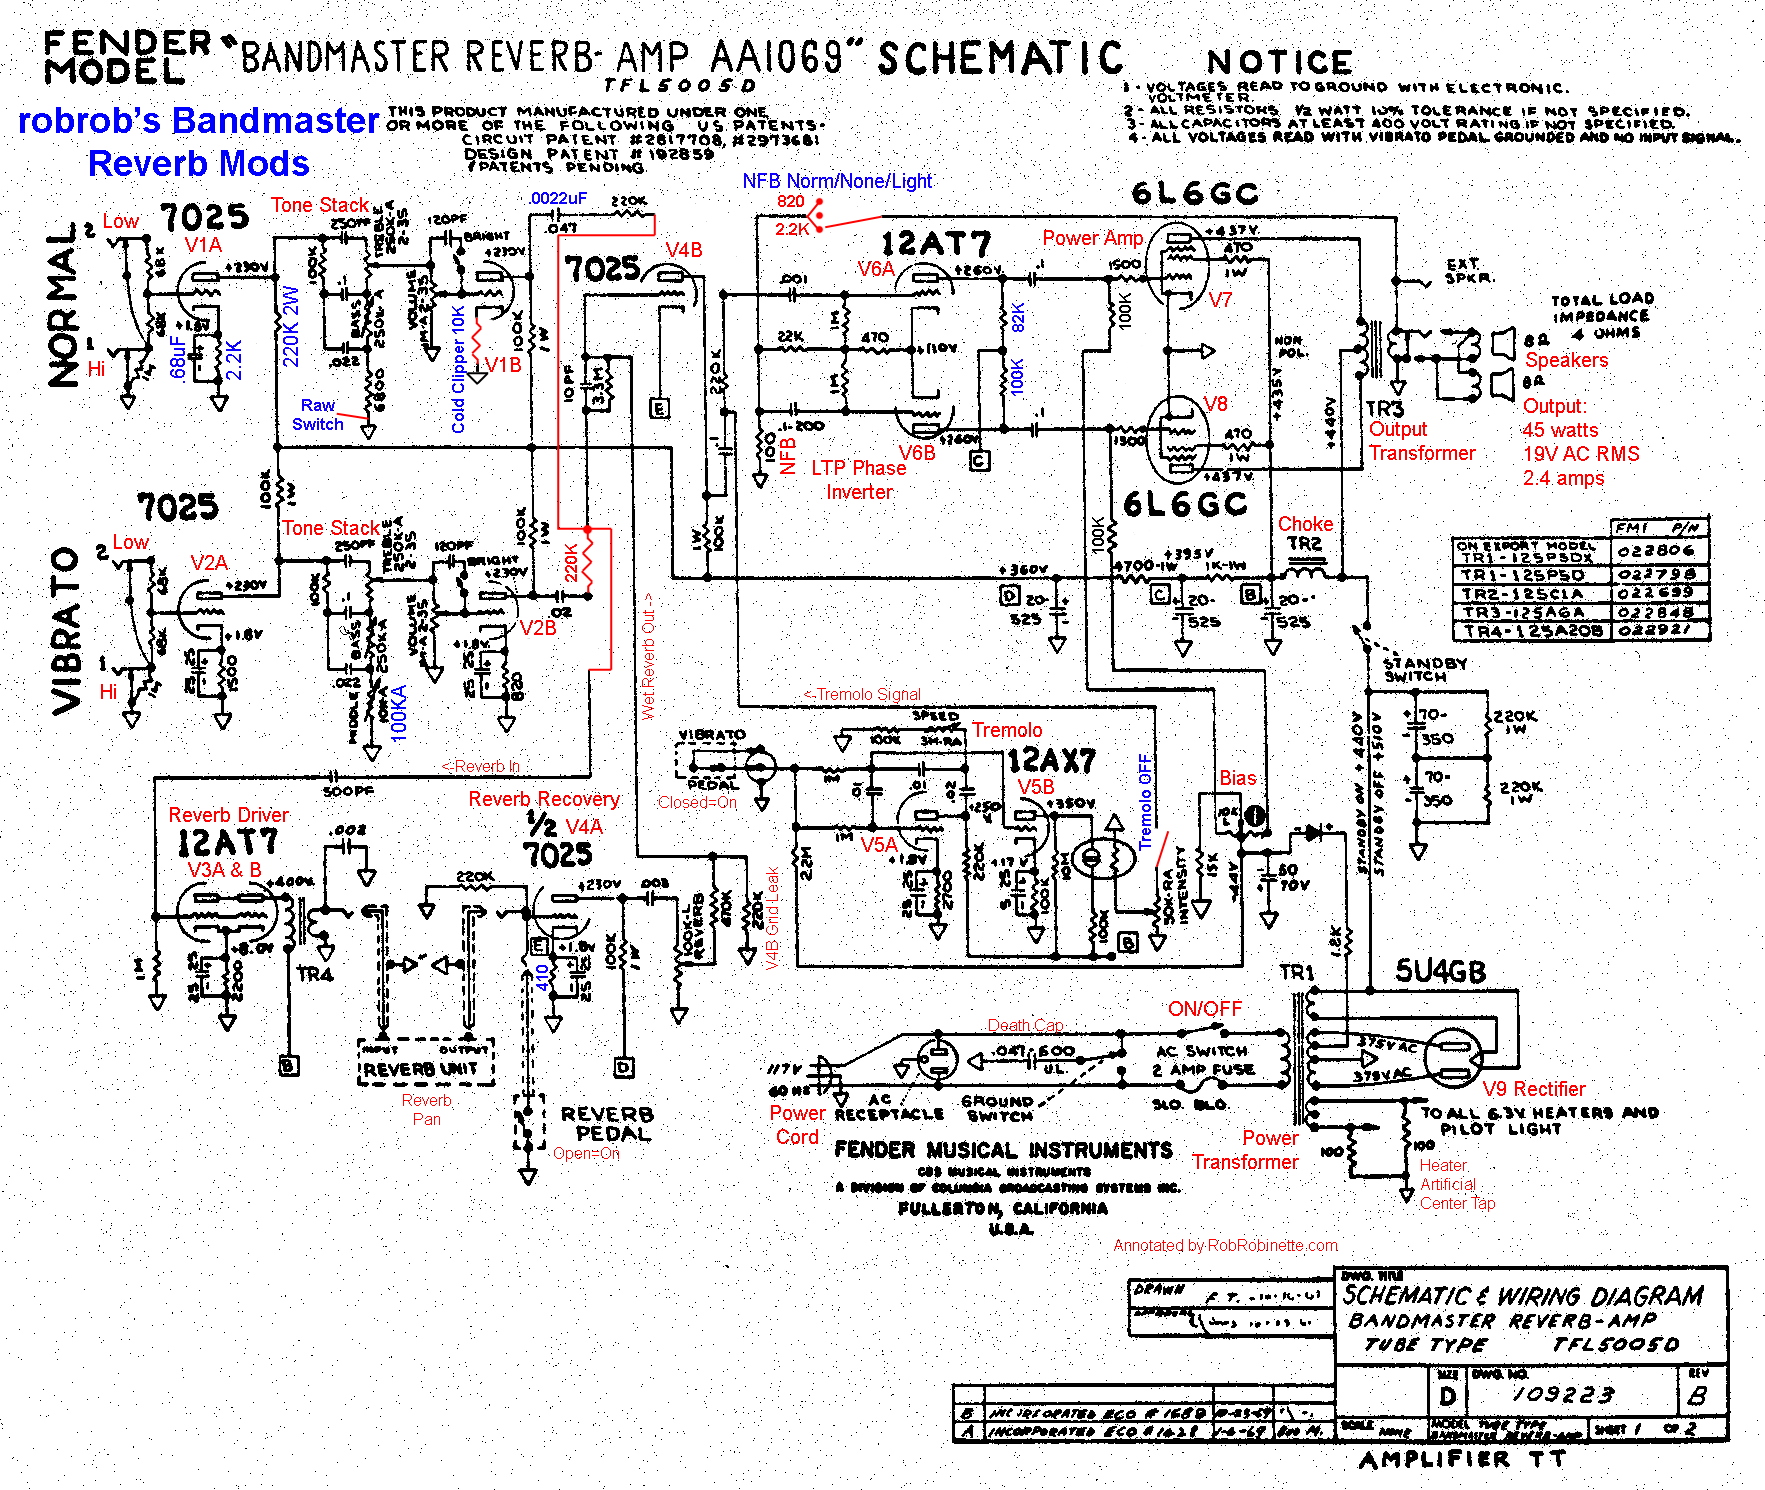 fender bandmaster wiring diagram wiring diagramfender bandmaster wiring diagram speakers the bandmaster s 2 215 12 speaker cabi was from the fender factory loaded with either jensen c12n or oxford 12t6